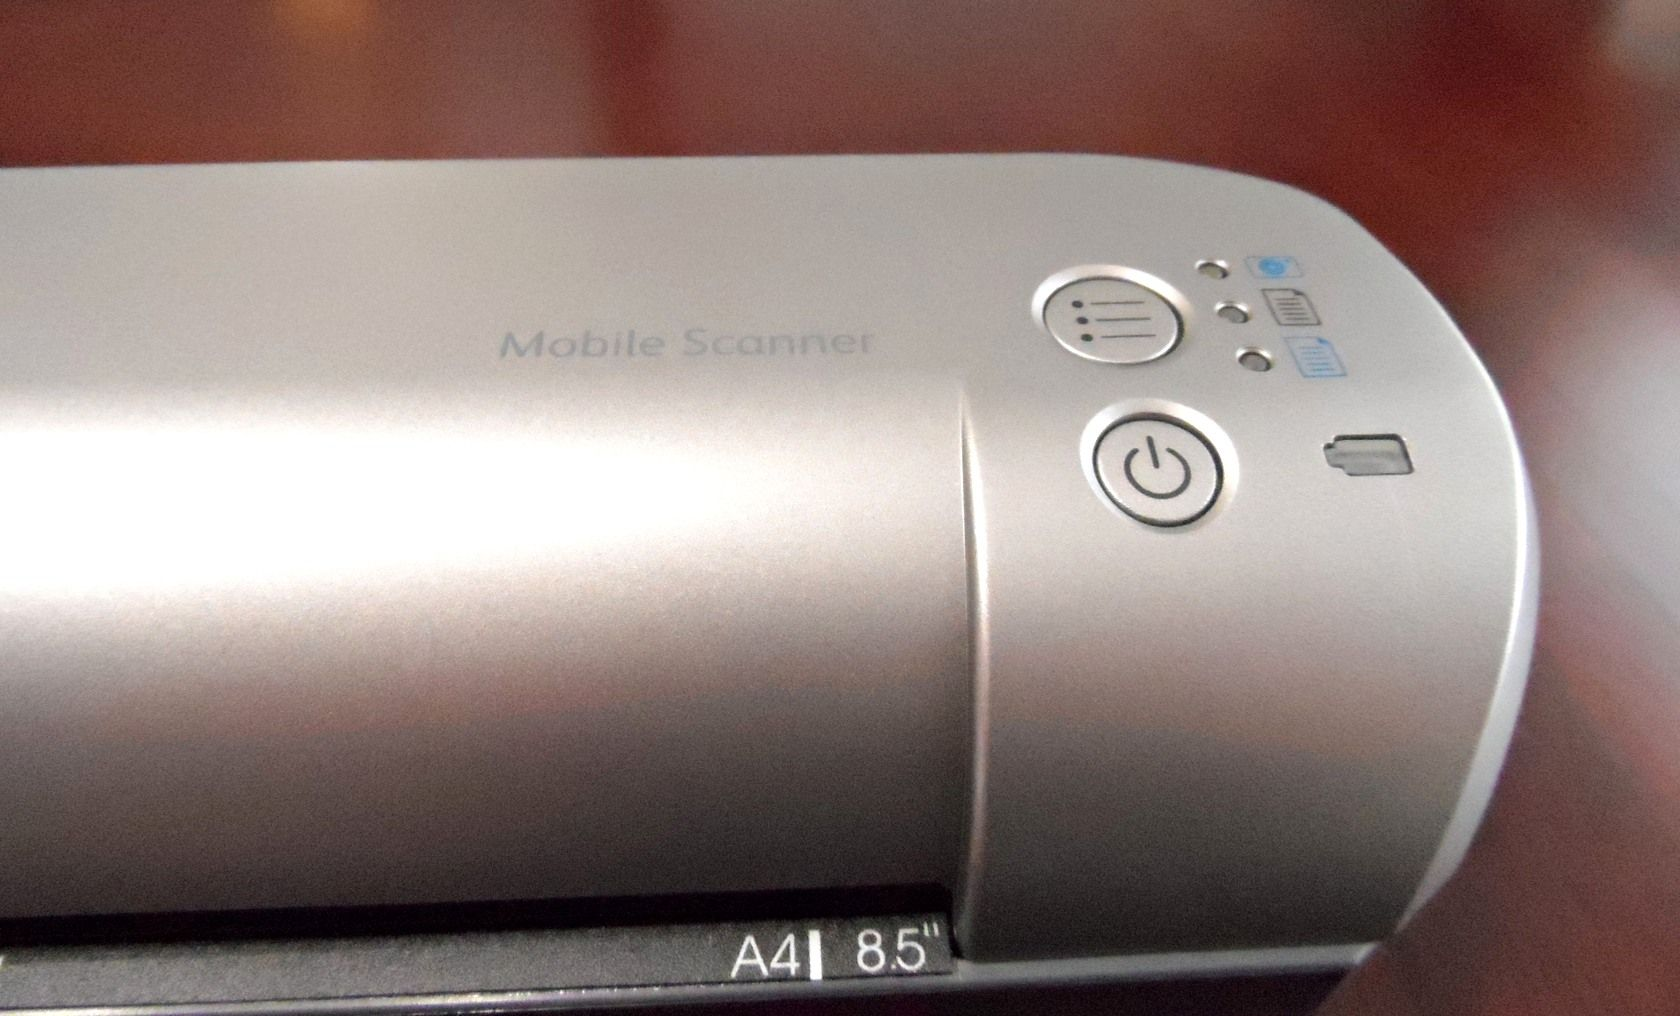 xerox mobile scanner review